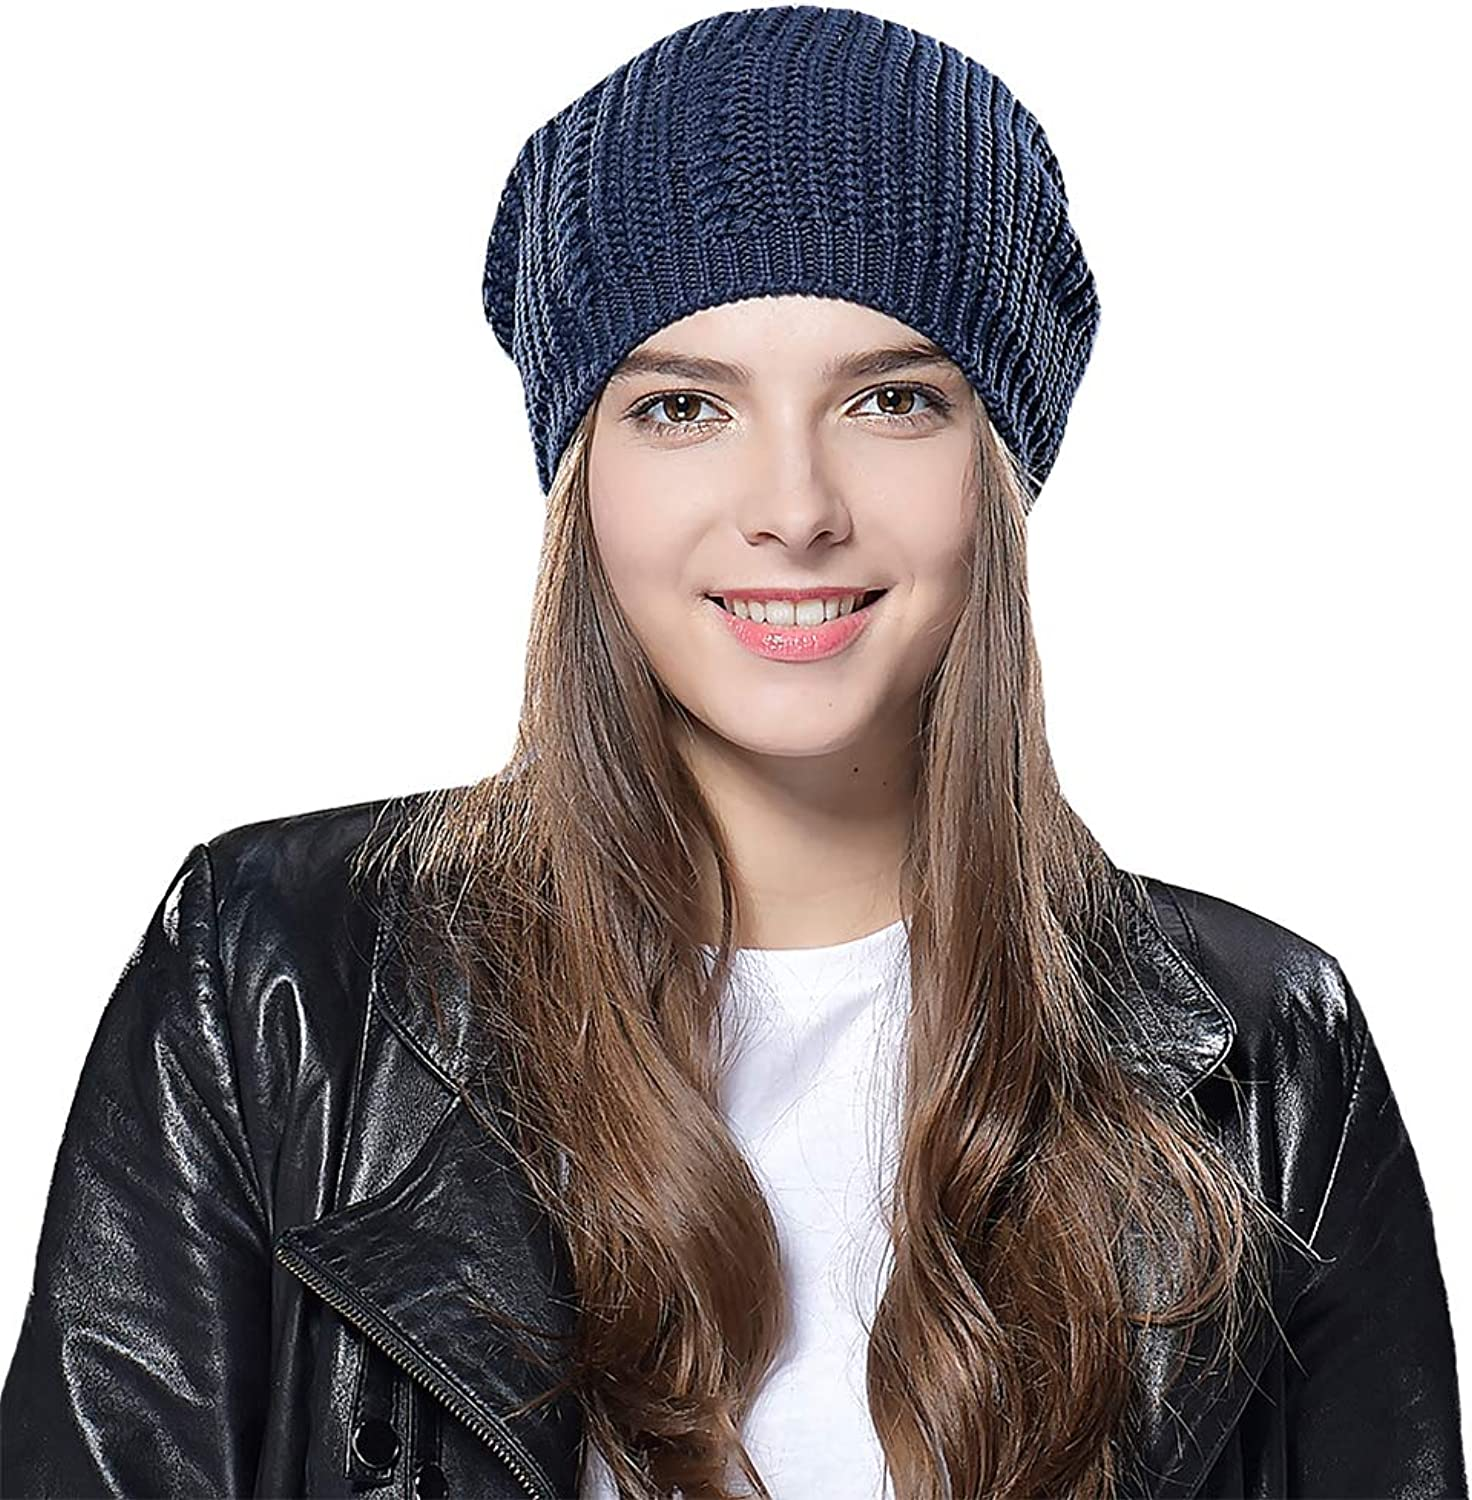 cccad041 Taylormia Taylormia Taylormia Winter Warm Slouchy Wool Solid Knit Beanie Hat  Ski Cap for Women & Men 62f5a7